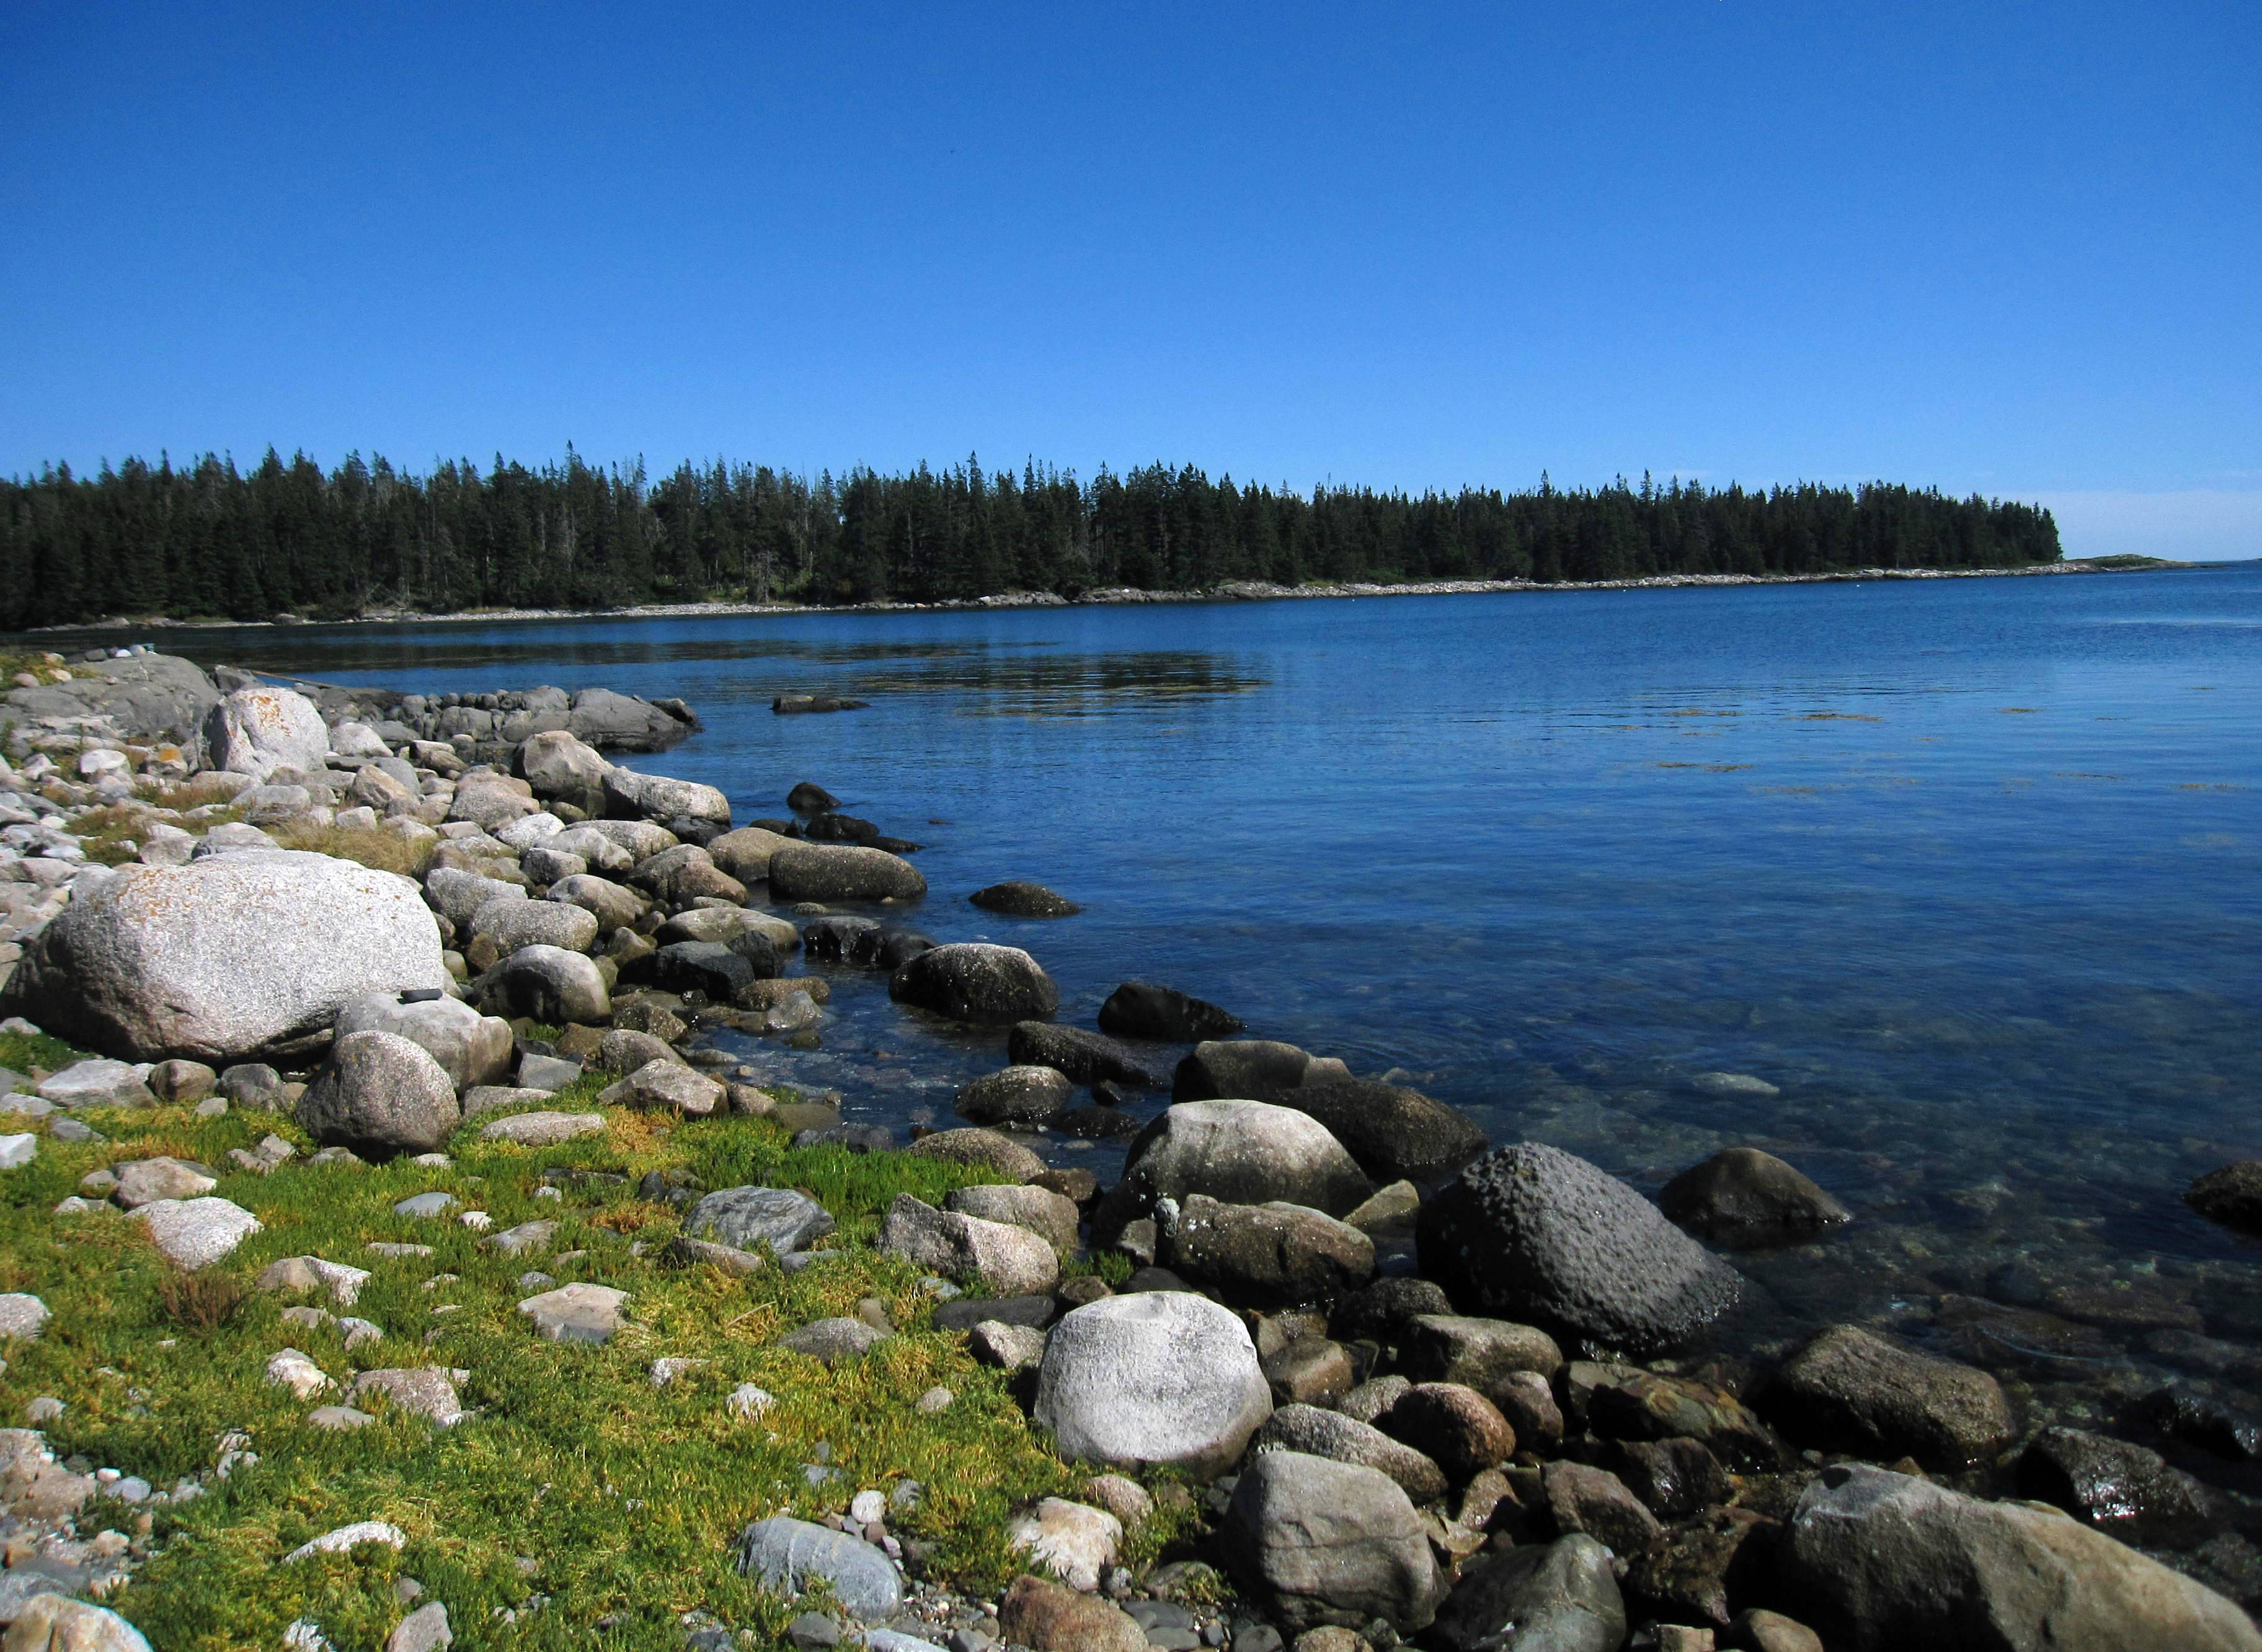 A quiet waterfront cove with a rocky shore is framed by evergreen trees on Maine's Vinalhaven Island. The island, reachable by a 75-minute ferry from the coastal town of Rockland, offers summertime visitors scenery, history, great places to bike and good food.